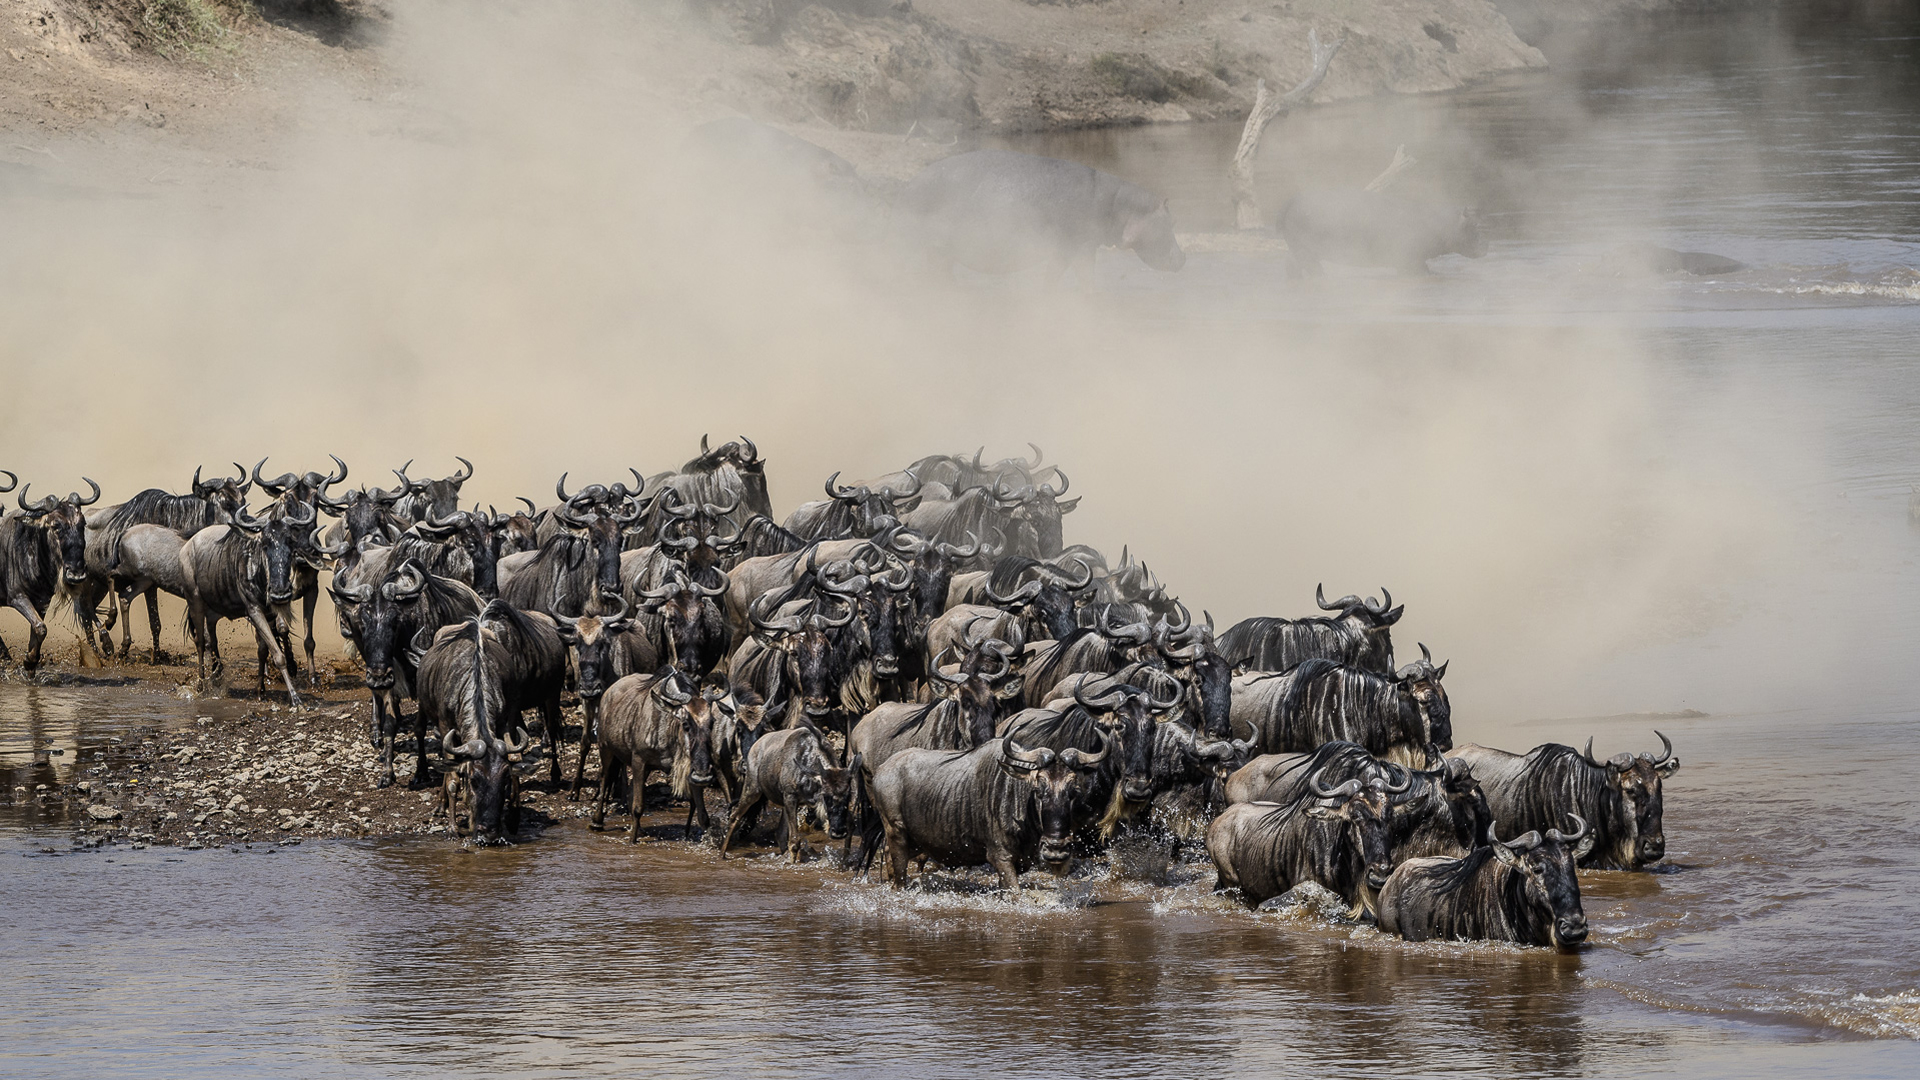 wildebeest migration crossing